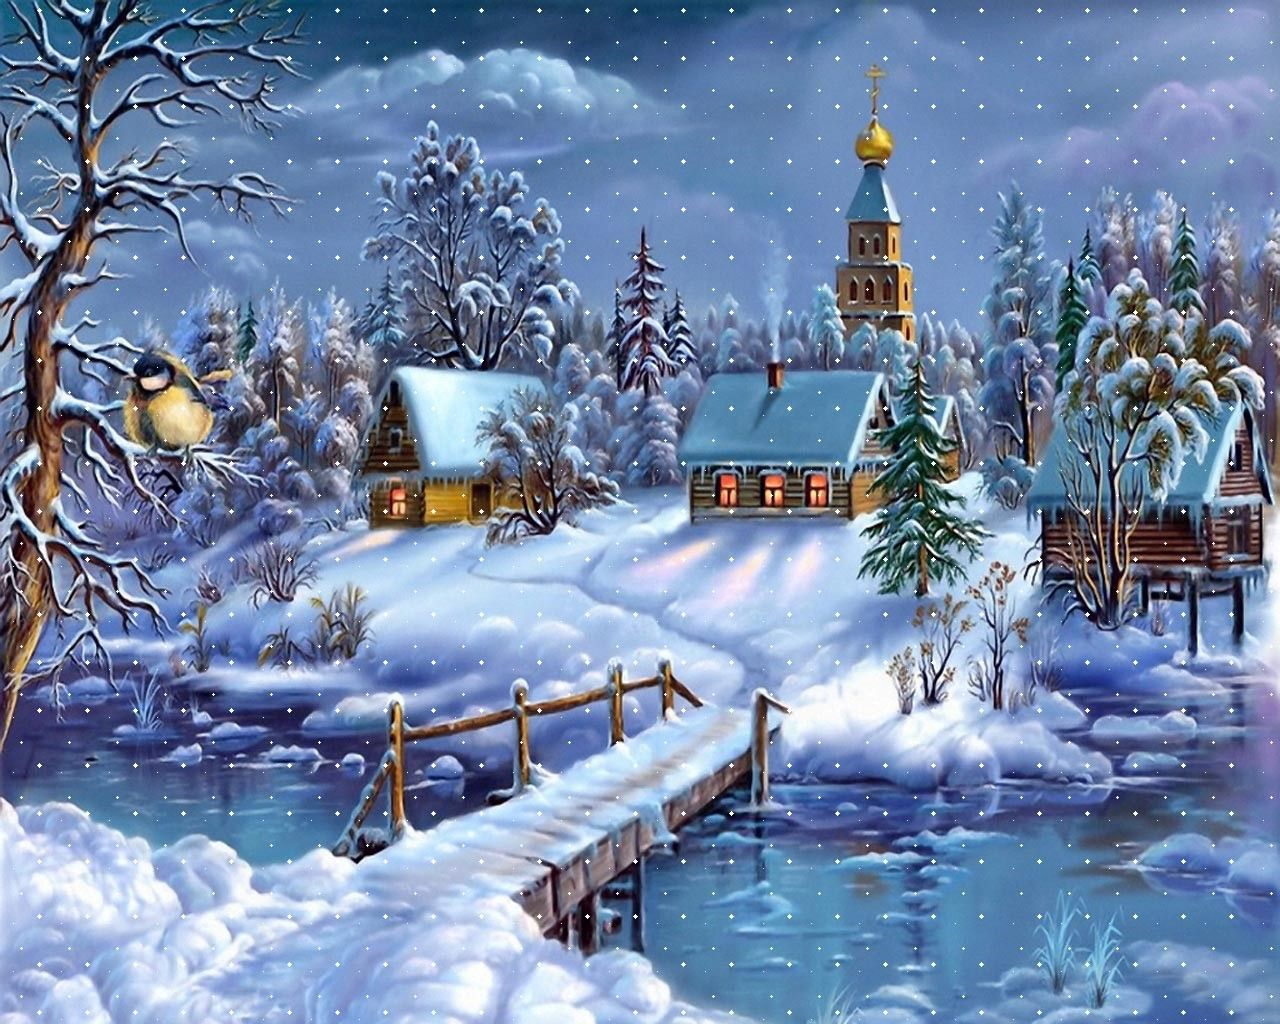 snowy christmas night on holiday images hd wallpapers sf7uecmu